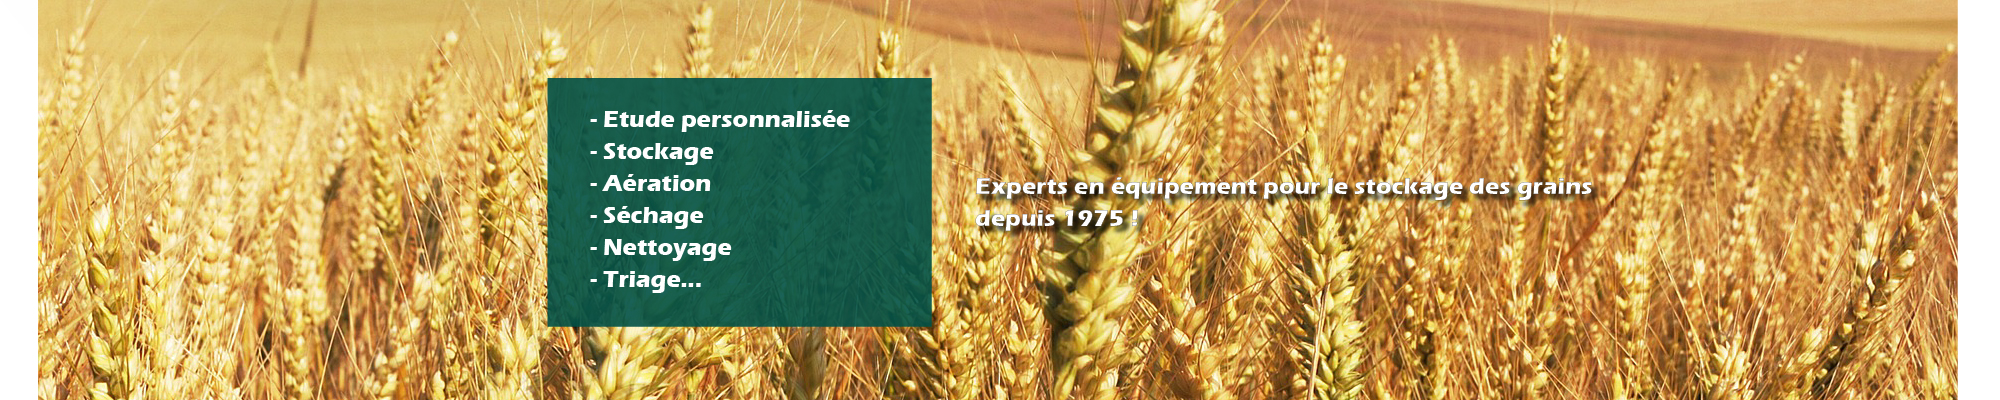 HAMEL specialiste equipement stockage aeration sehage nettoyage grain cereales